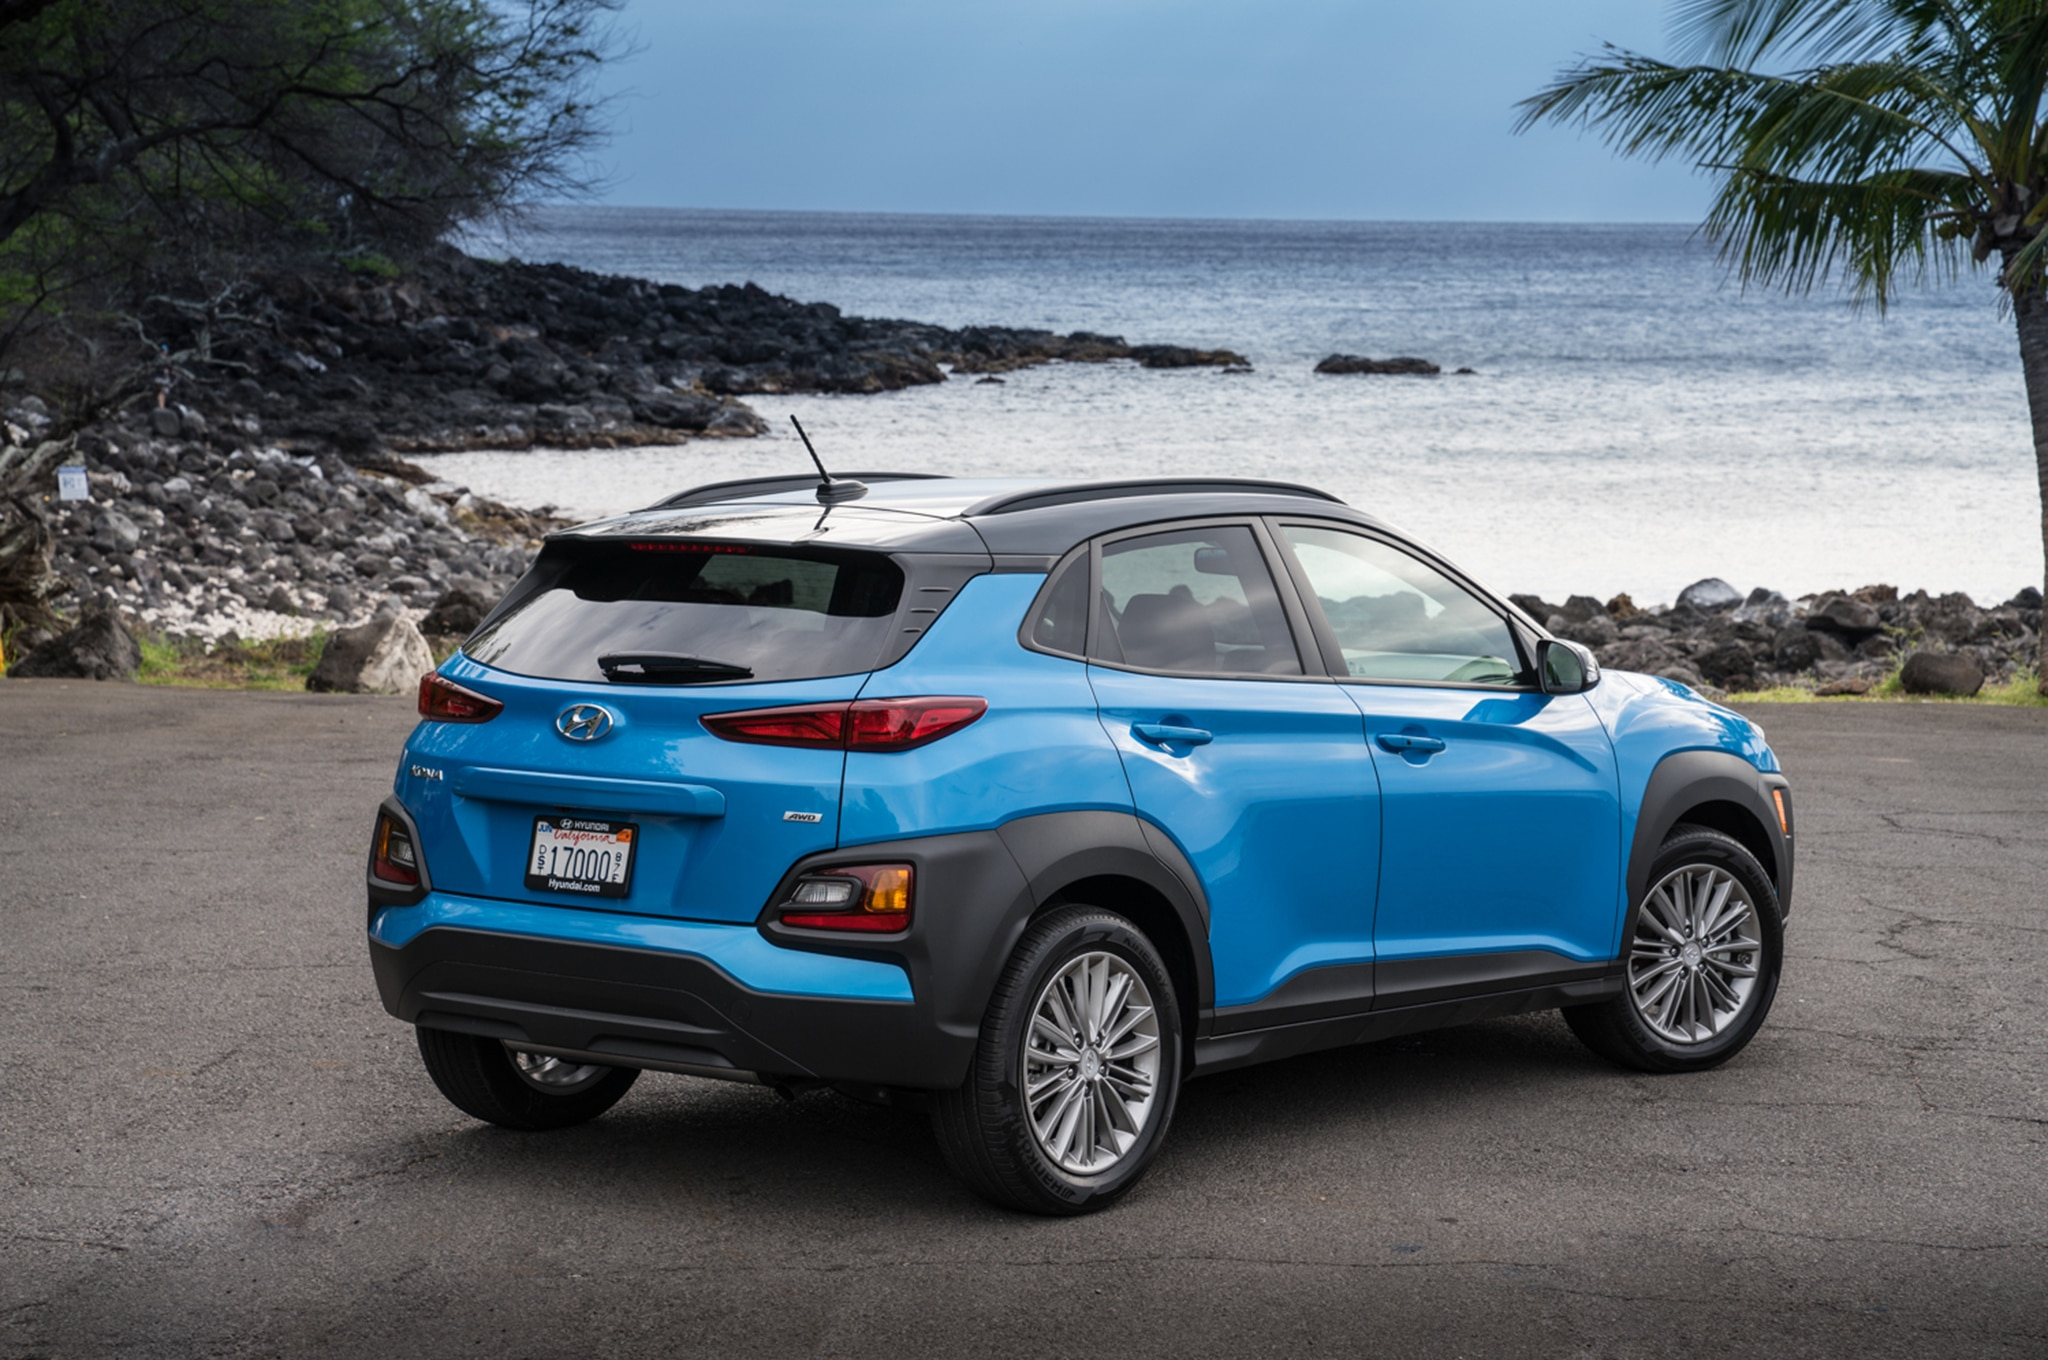 2018 hyundai kona first drive review automobile magazine. Black Bedroom Furniture Sets. Home Design Ideas